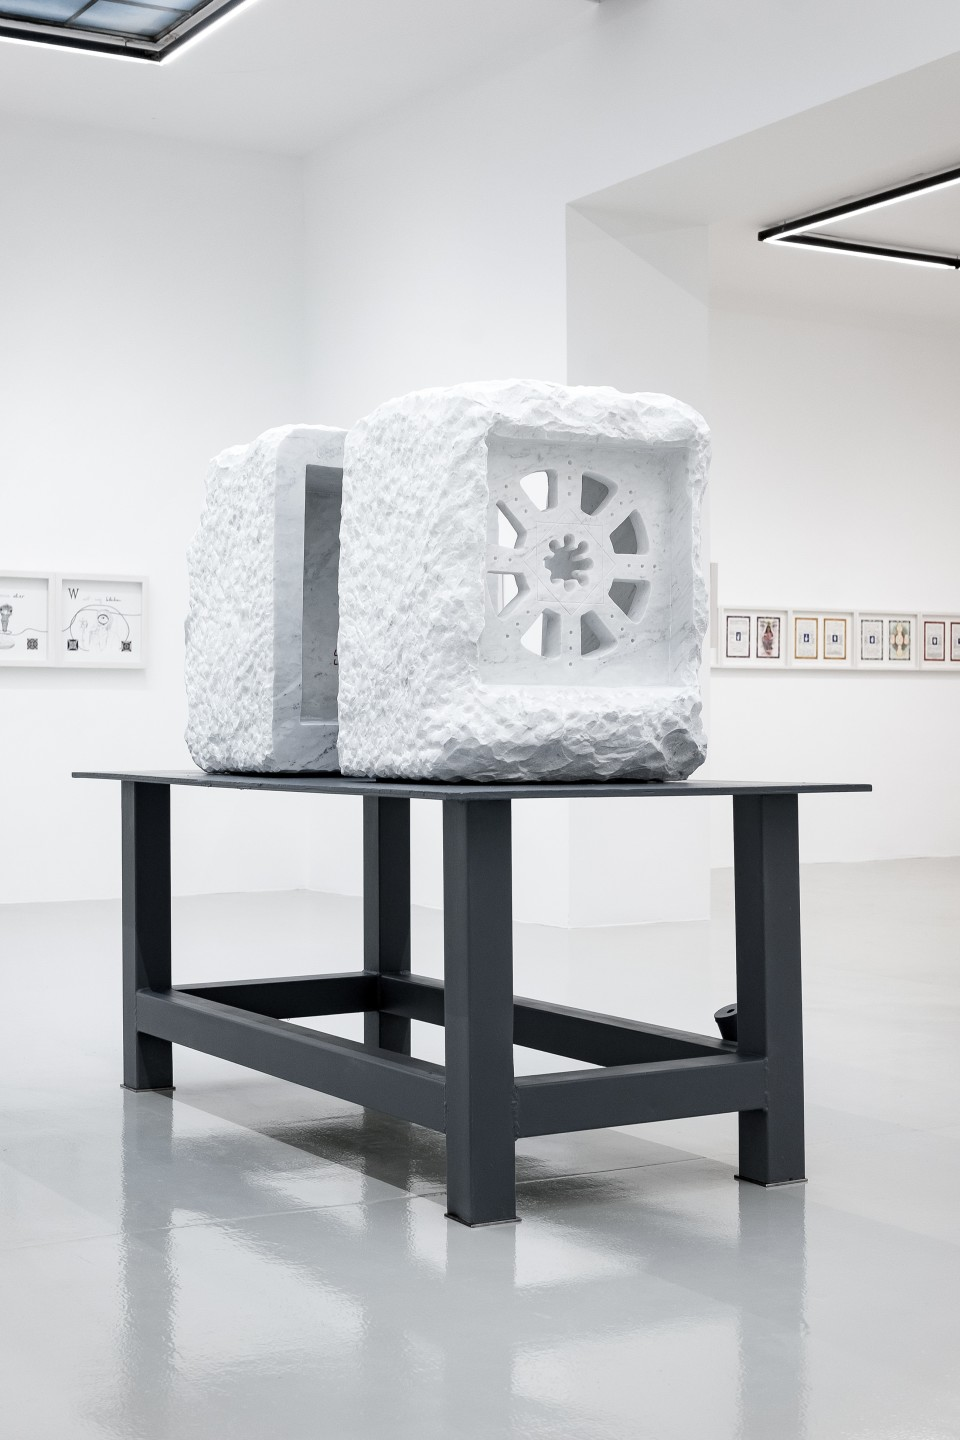 Markus Redl Stein 142-143 (Rechtsfreier Raum), 2015 Bianco Carrara marble on steel table 1,2 t 200 x 170 x 100 cm 78 3/4 x 66 7/8 x 39 3/8 in